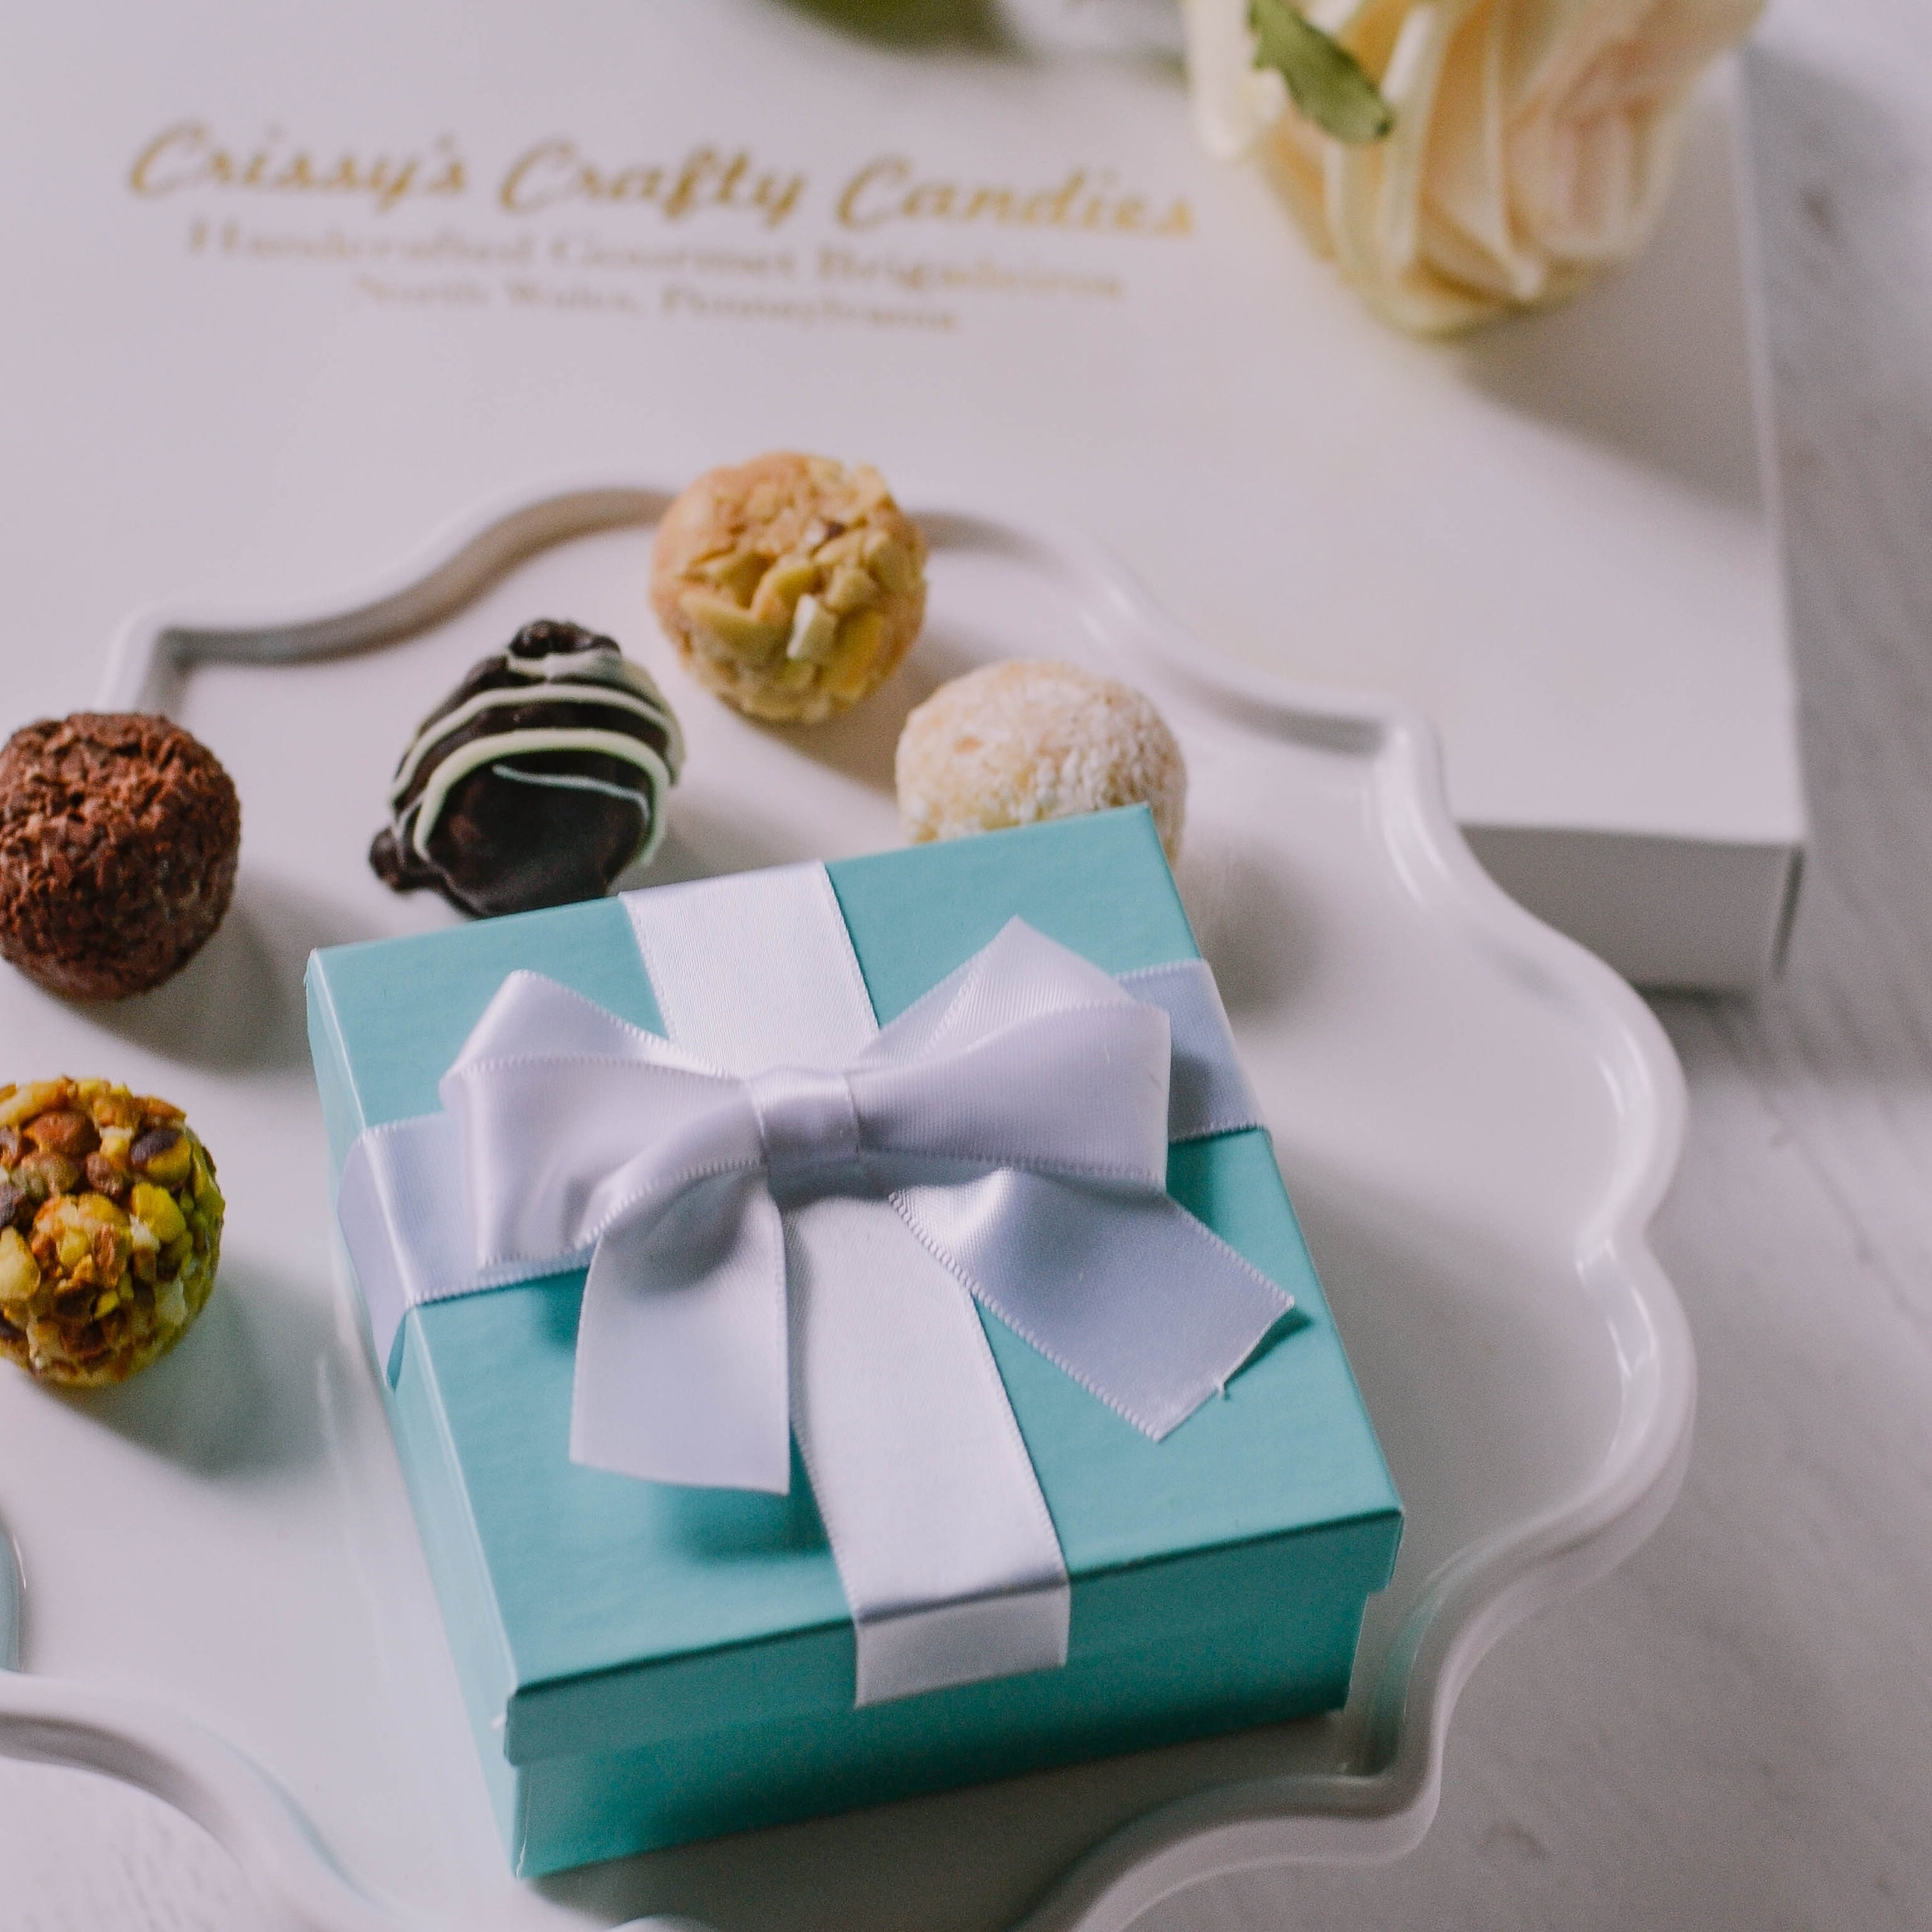 BREAKFAST AT TIFFANY'S PARTY THEME - ONE PIECES AND TWO PIECES FAVOR BOXES